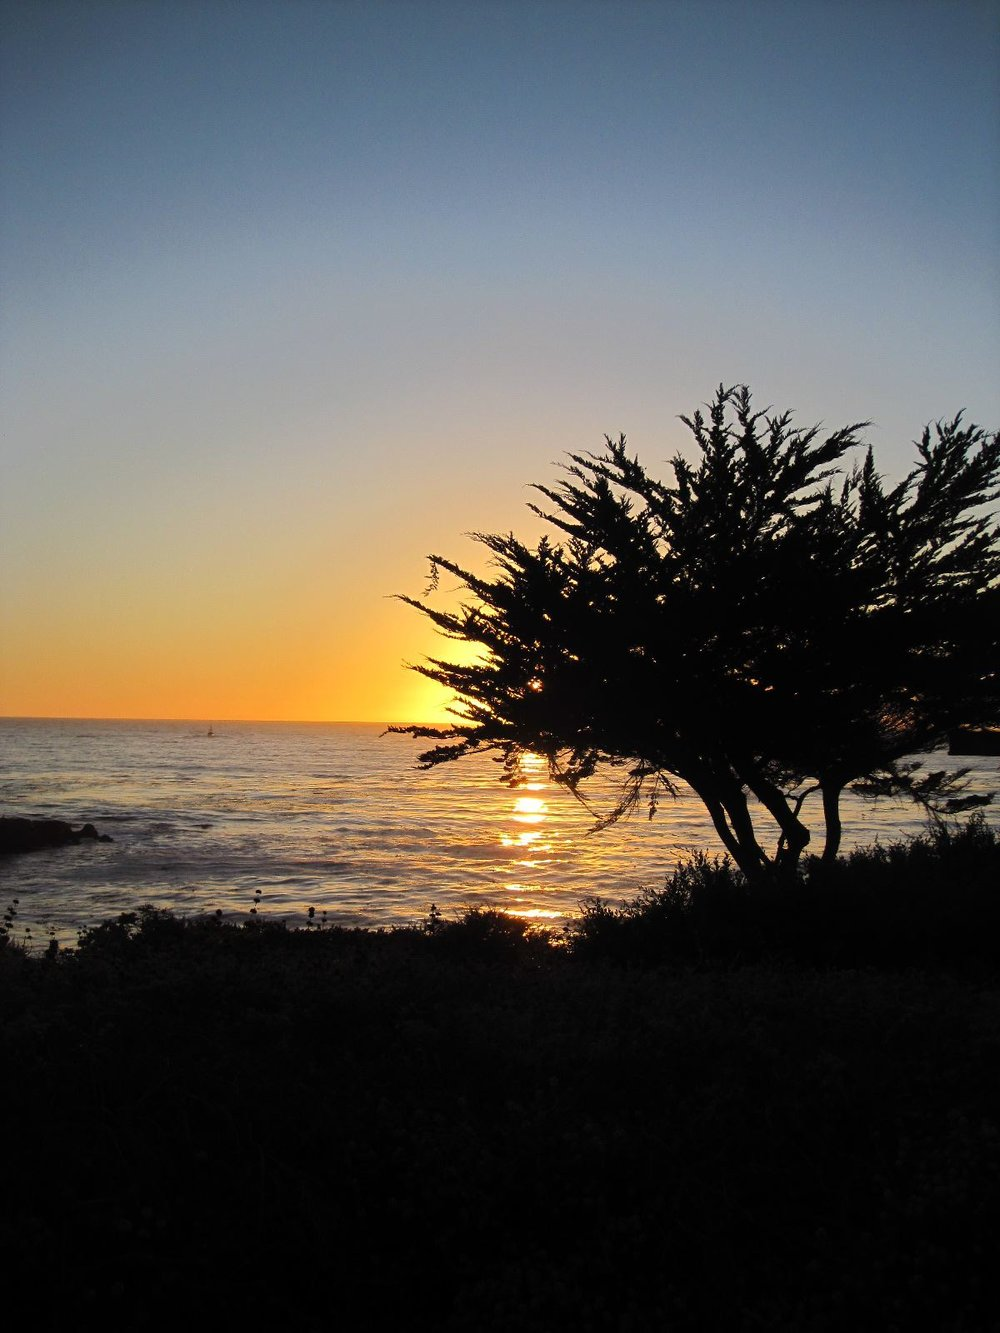 sunset carmel bay.jpg